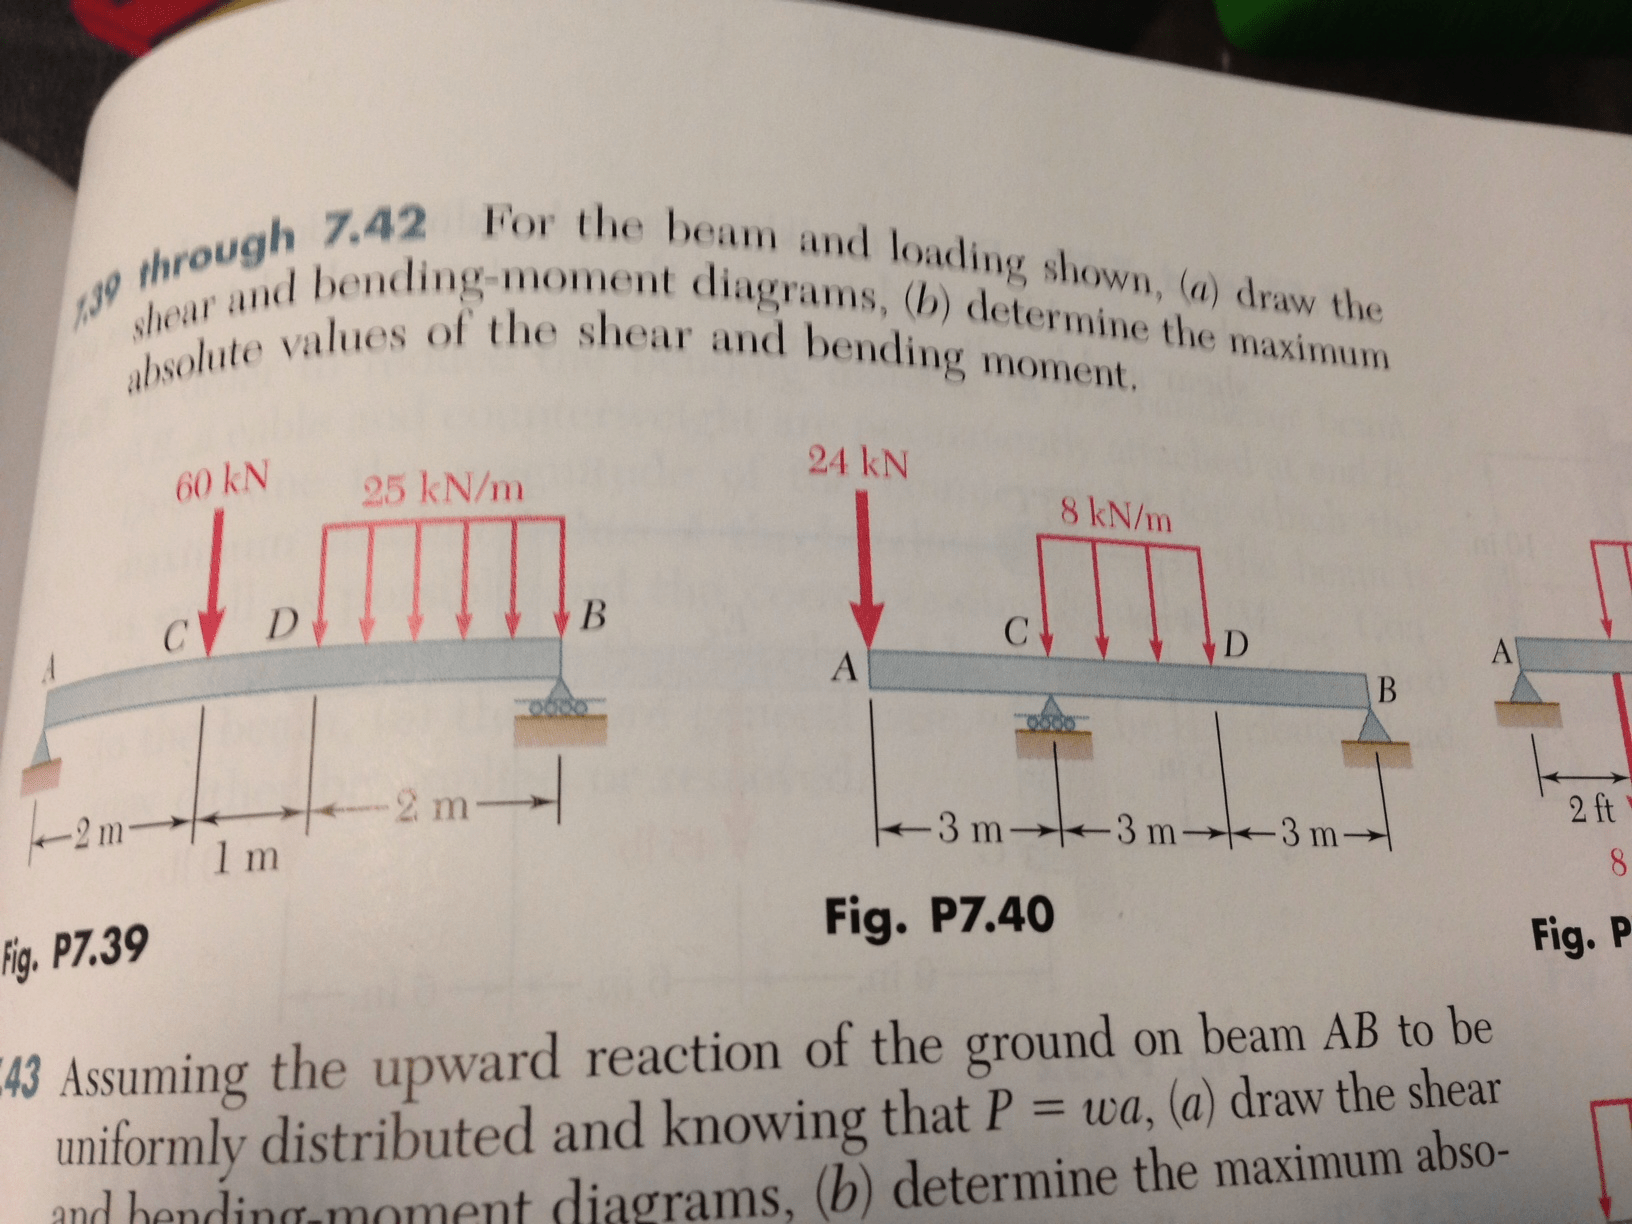 how to draw shear and bending moment diagrams euglena diagram labeled for the beam loading shown a